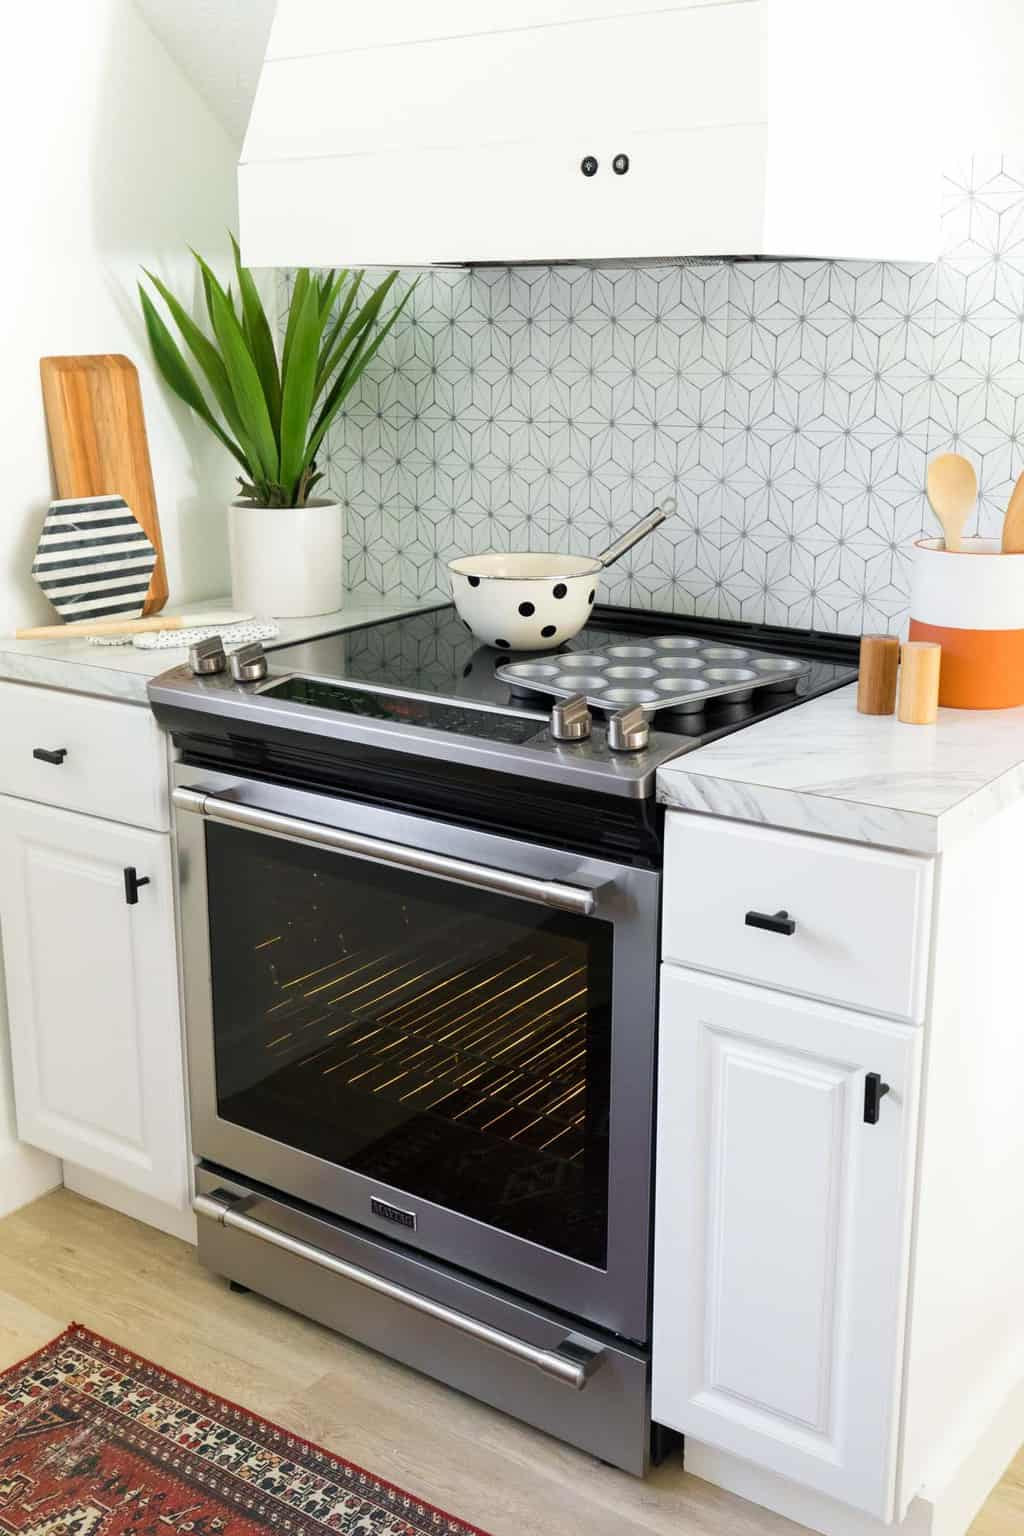 photo of our Maytag oven by top Houston lifestyle blogger Ashley Rose of Sugar & Cloth